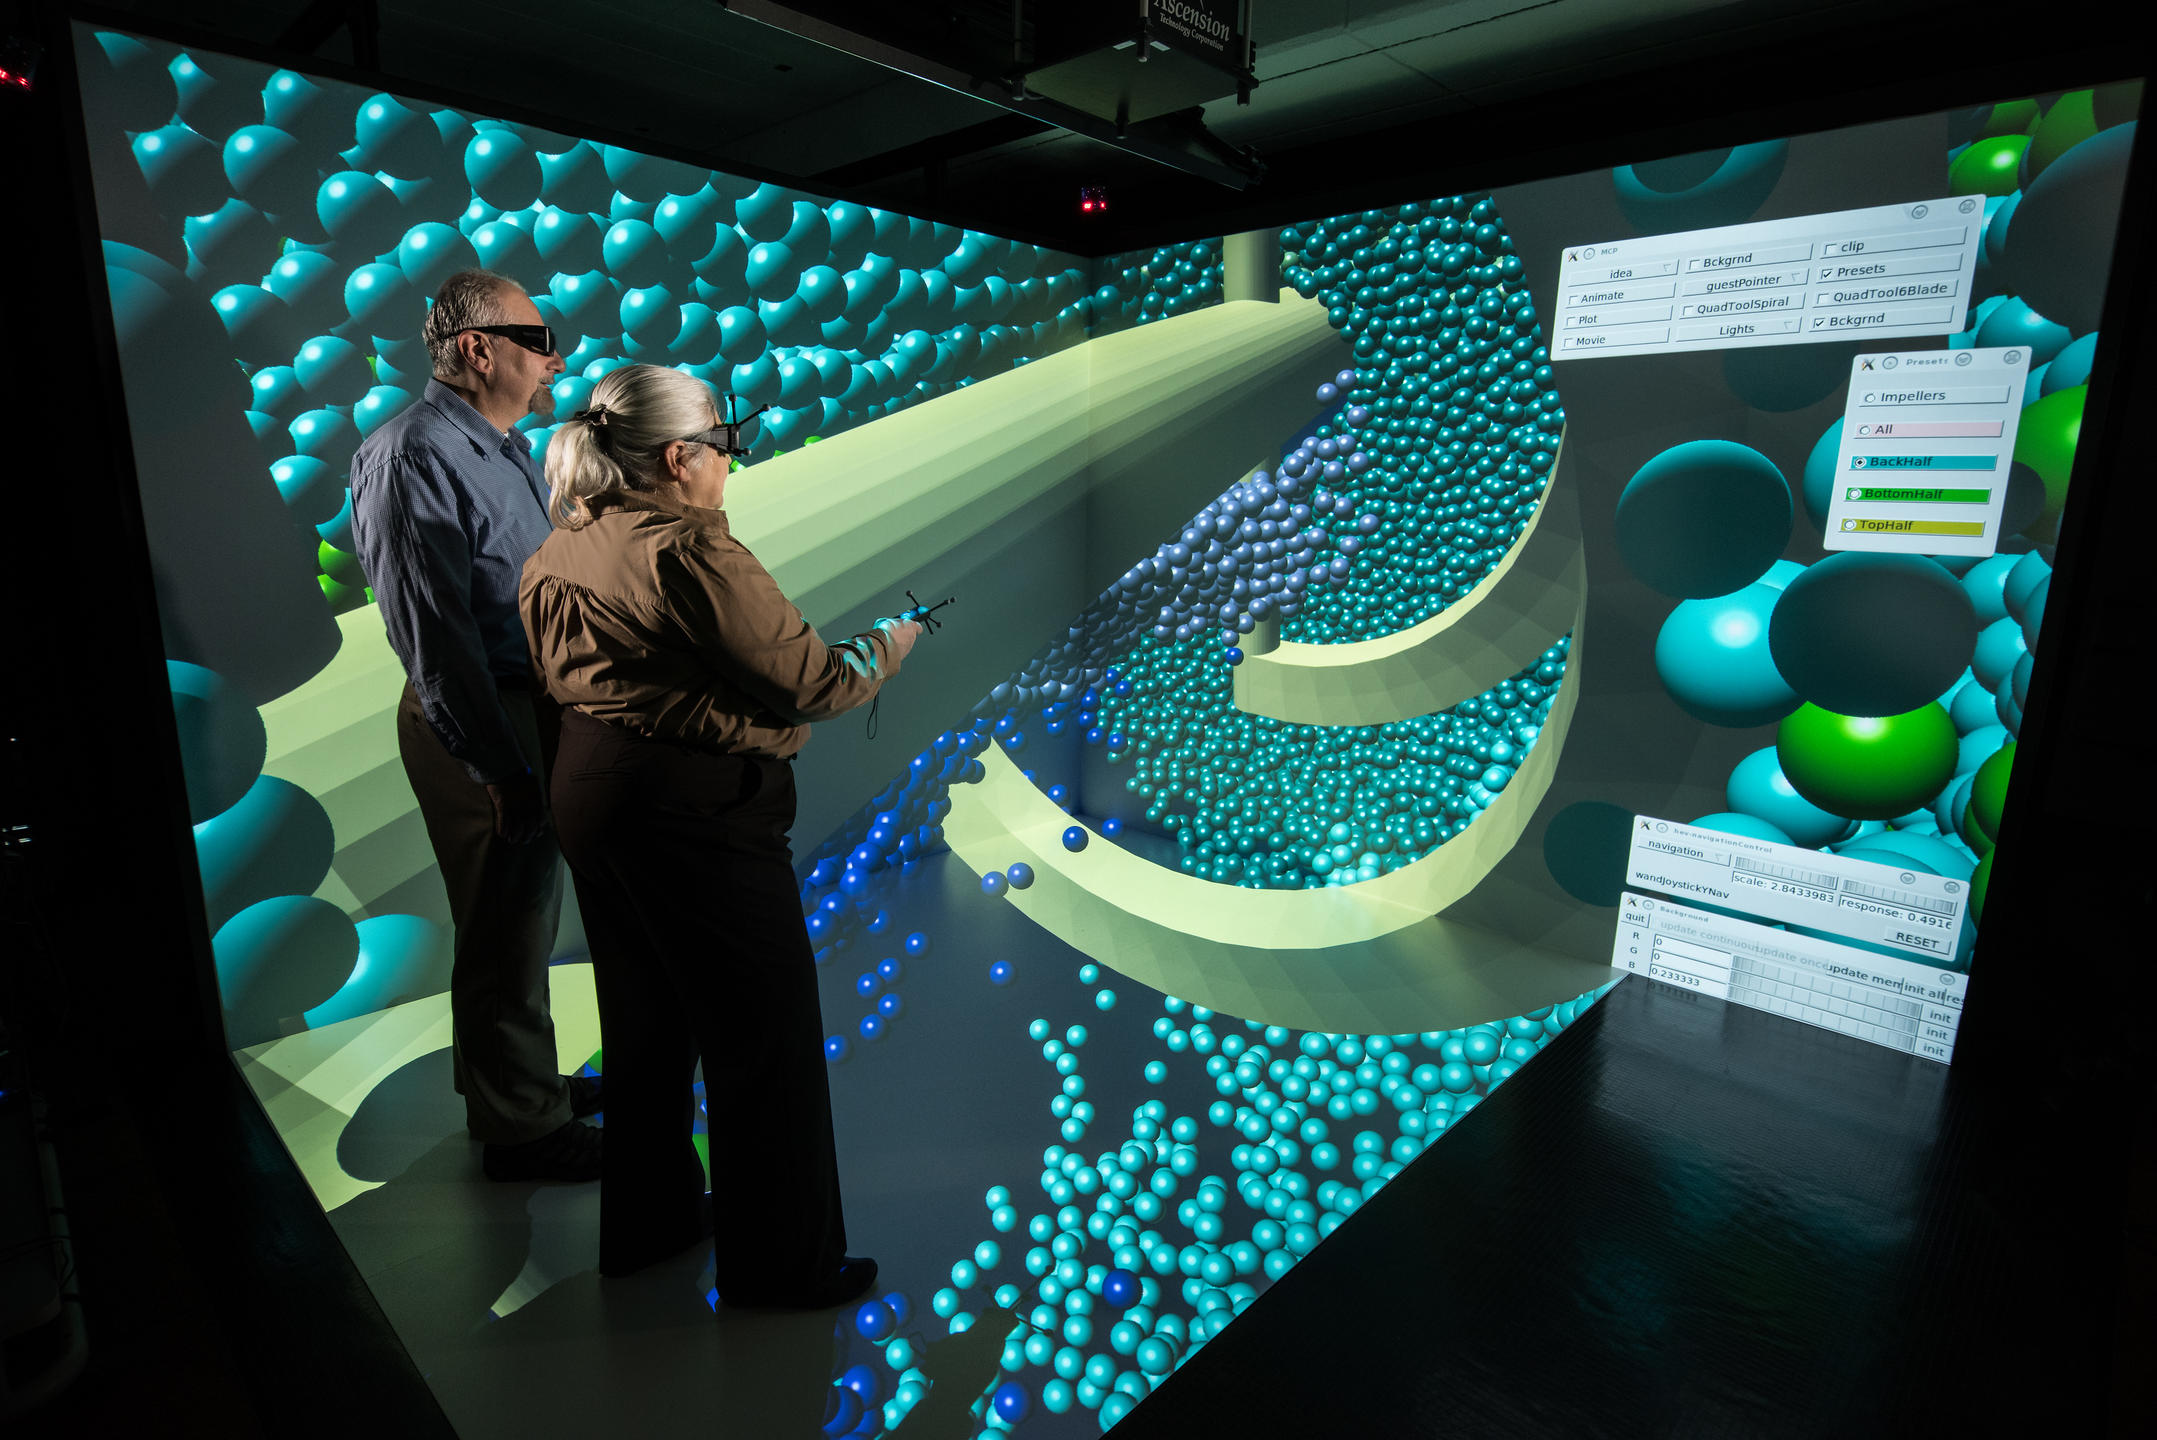 Researchers wearing virtual reality headsets in the CAVE, with concrete particles on display